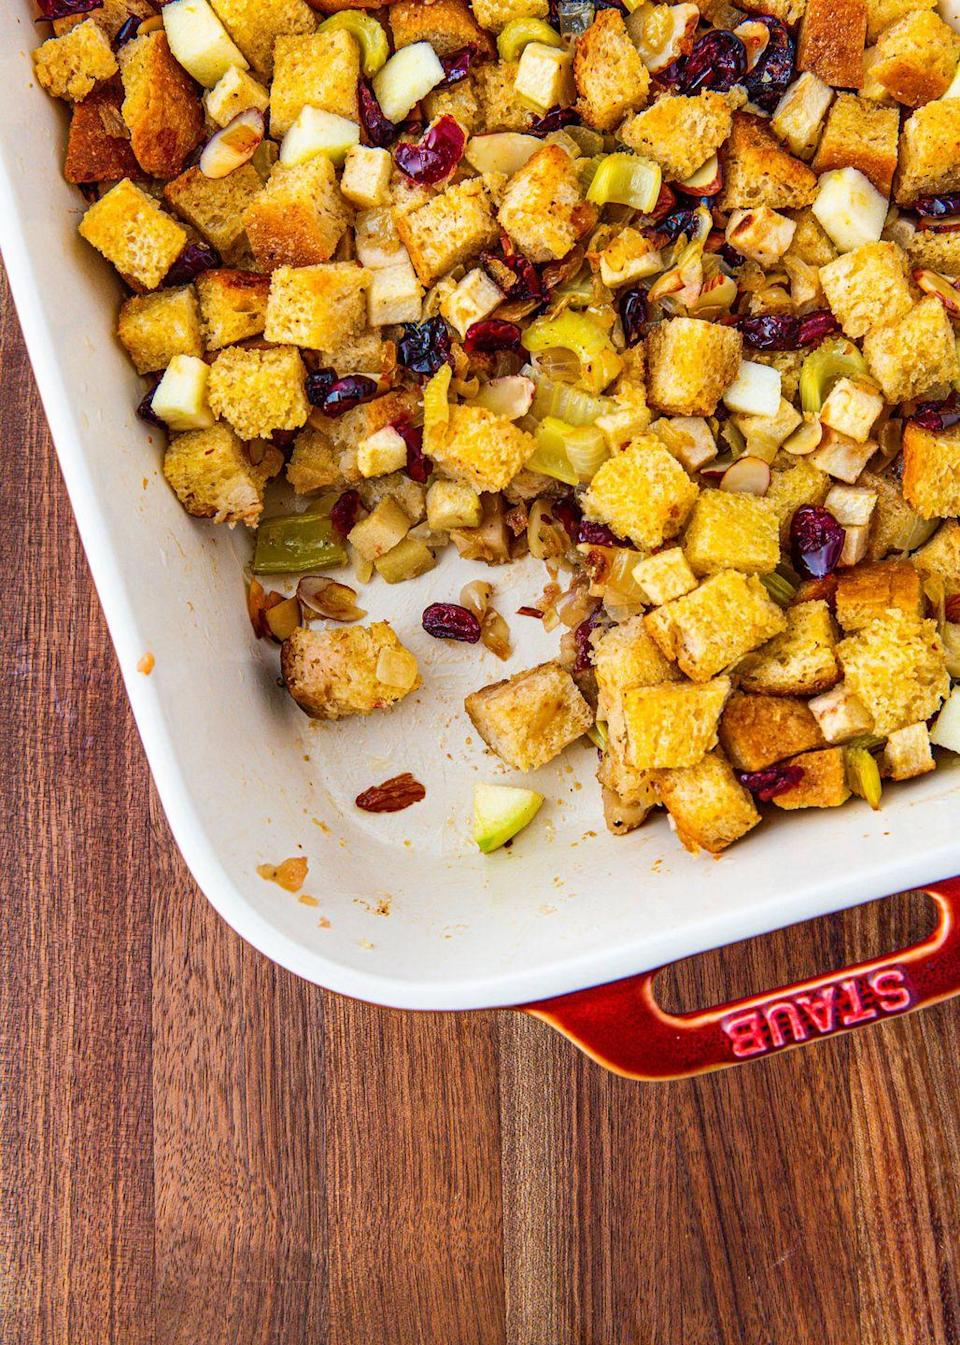 """<p>Your favorite fall fruit, now in a stuffing.</p><p>Get the recipe from <a href=""""https://www.delish.com/holiday-recipes/thanksgiving/a29492810/apple-stuffing-recipe/"""" rel=""""nofollow noopener"""" target=""""_blank"""" data-ylk=""""slk:Delish"""" class=""""link rapid-noclick-resp"""">Delish</a>.</p>"""